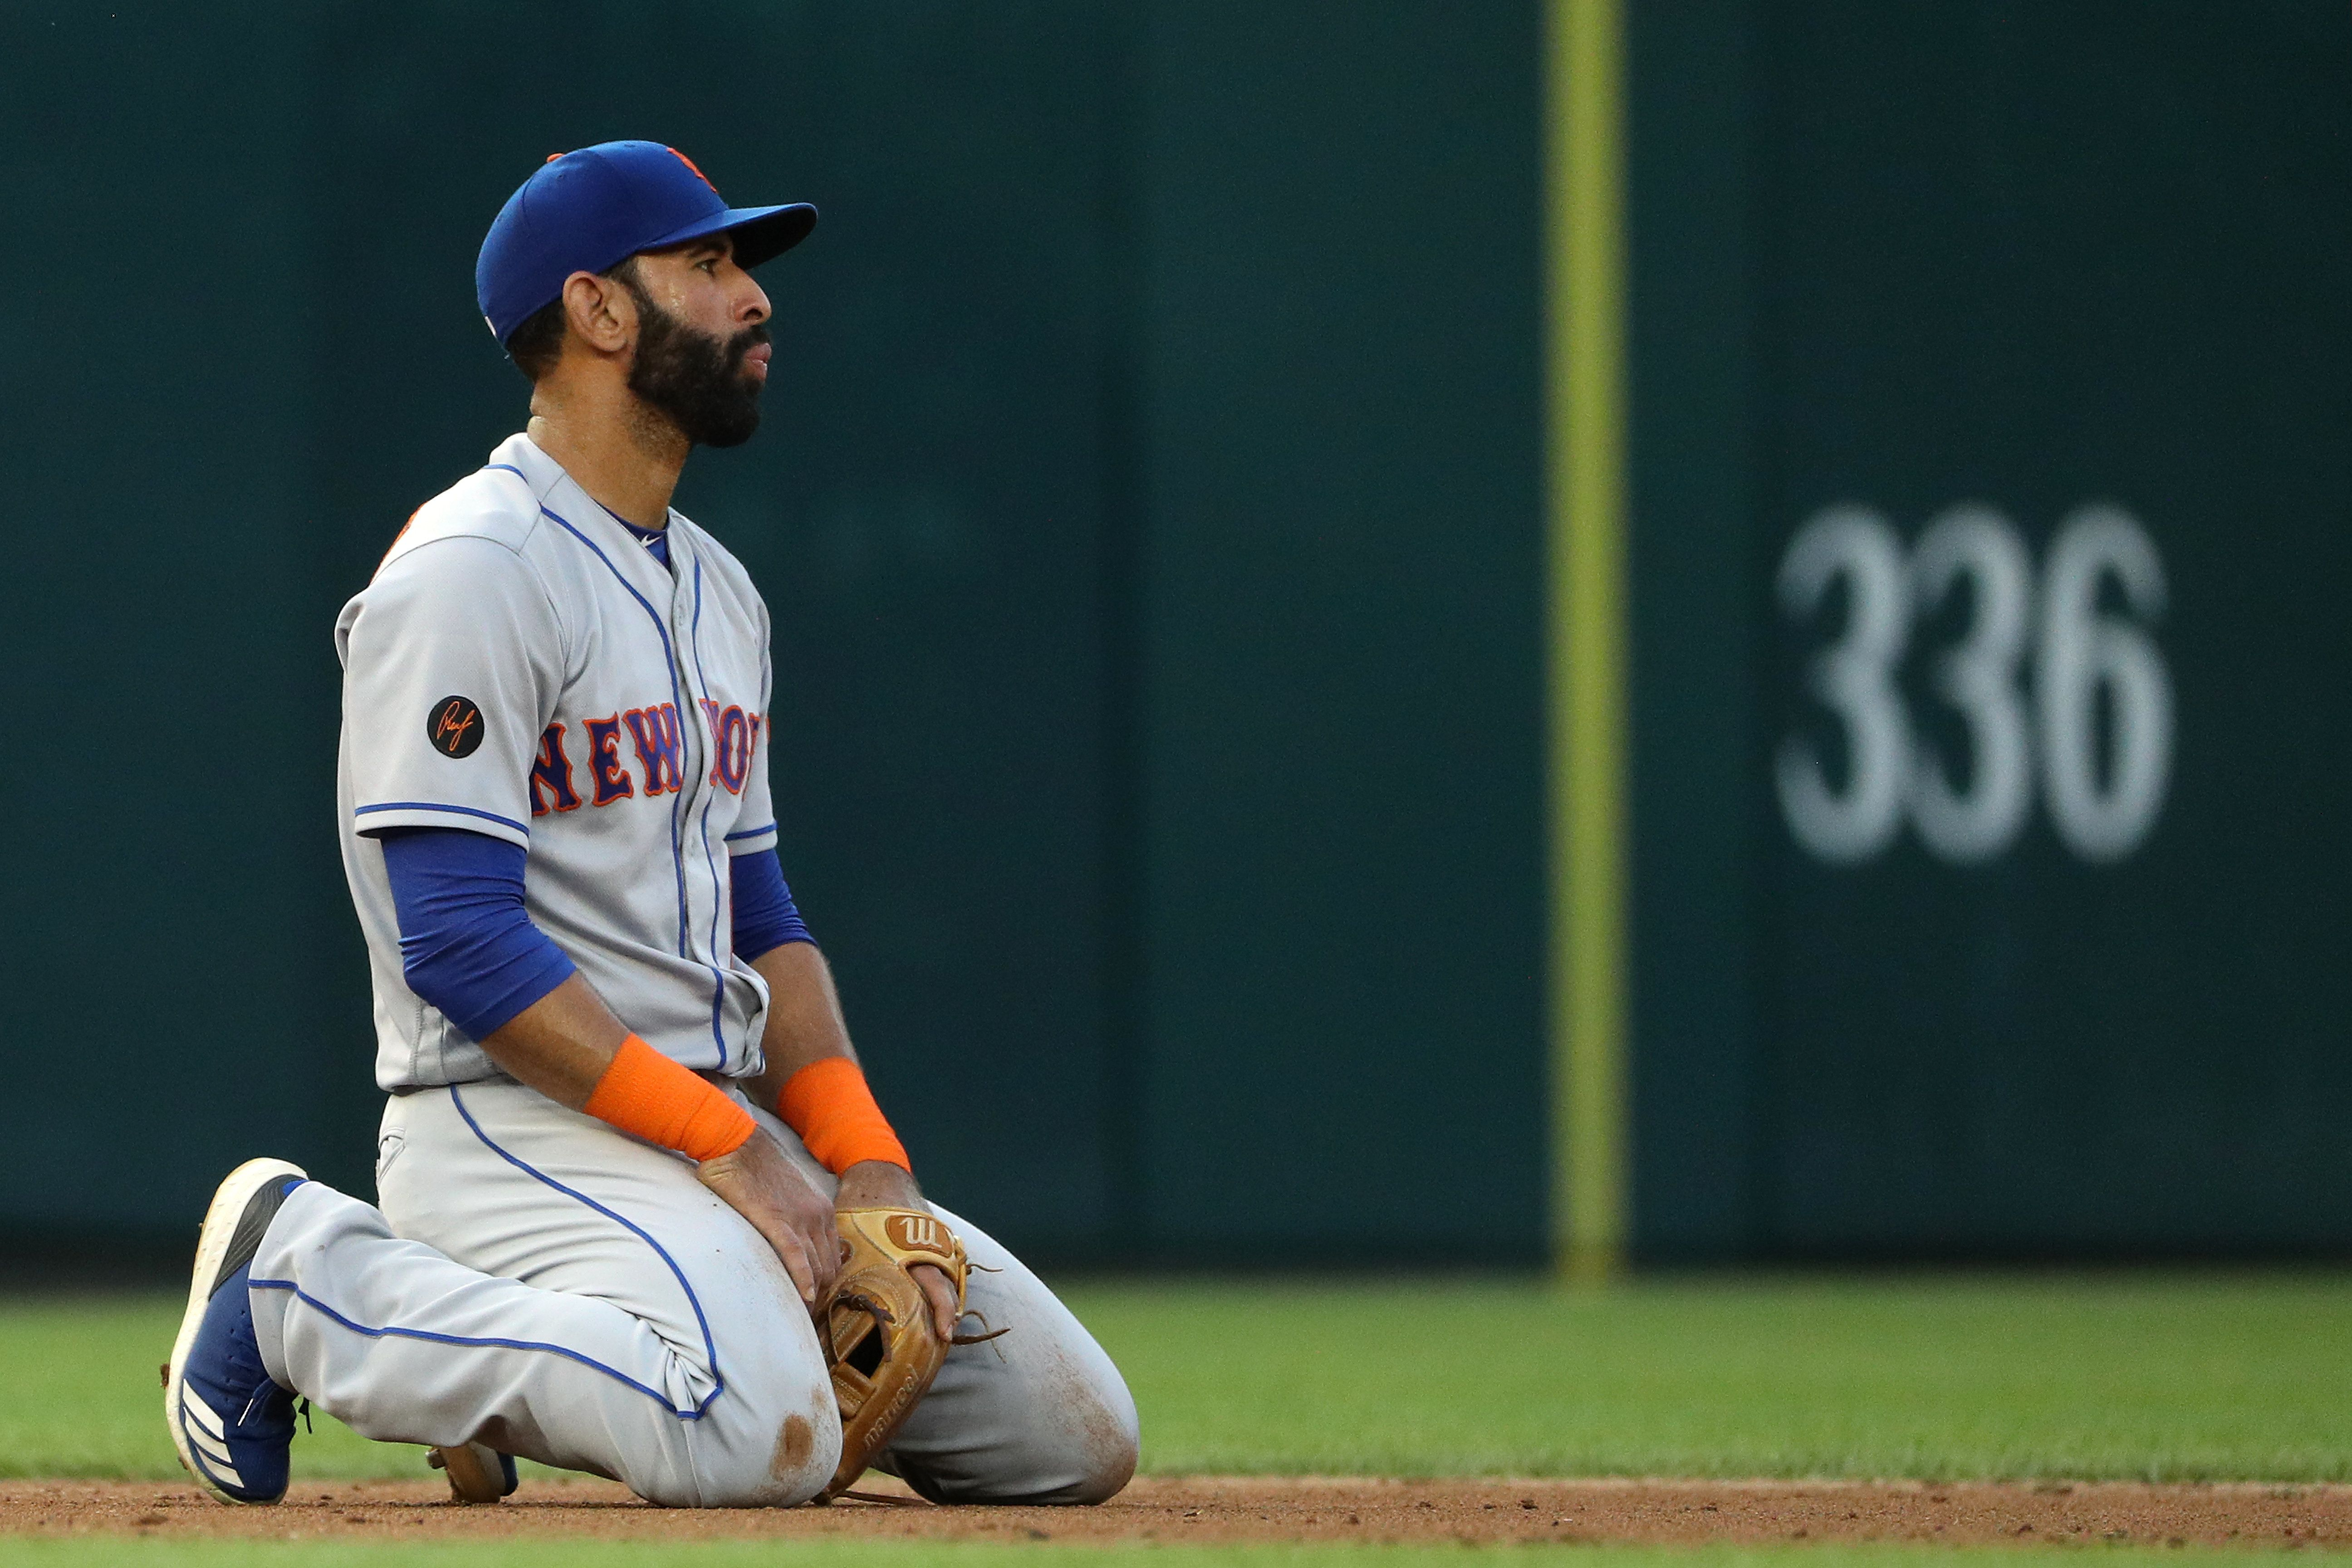 WASHINGTON, DC - JULY 31: Jose Bautista #11 of the New York Mets reacts against the Washington Nationals during the second inning at Nationals Park on July 31, 2018 in Washington, DC. (Photo by Patrick Smith/Getty Images)